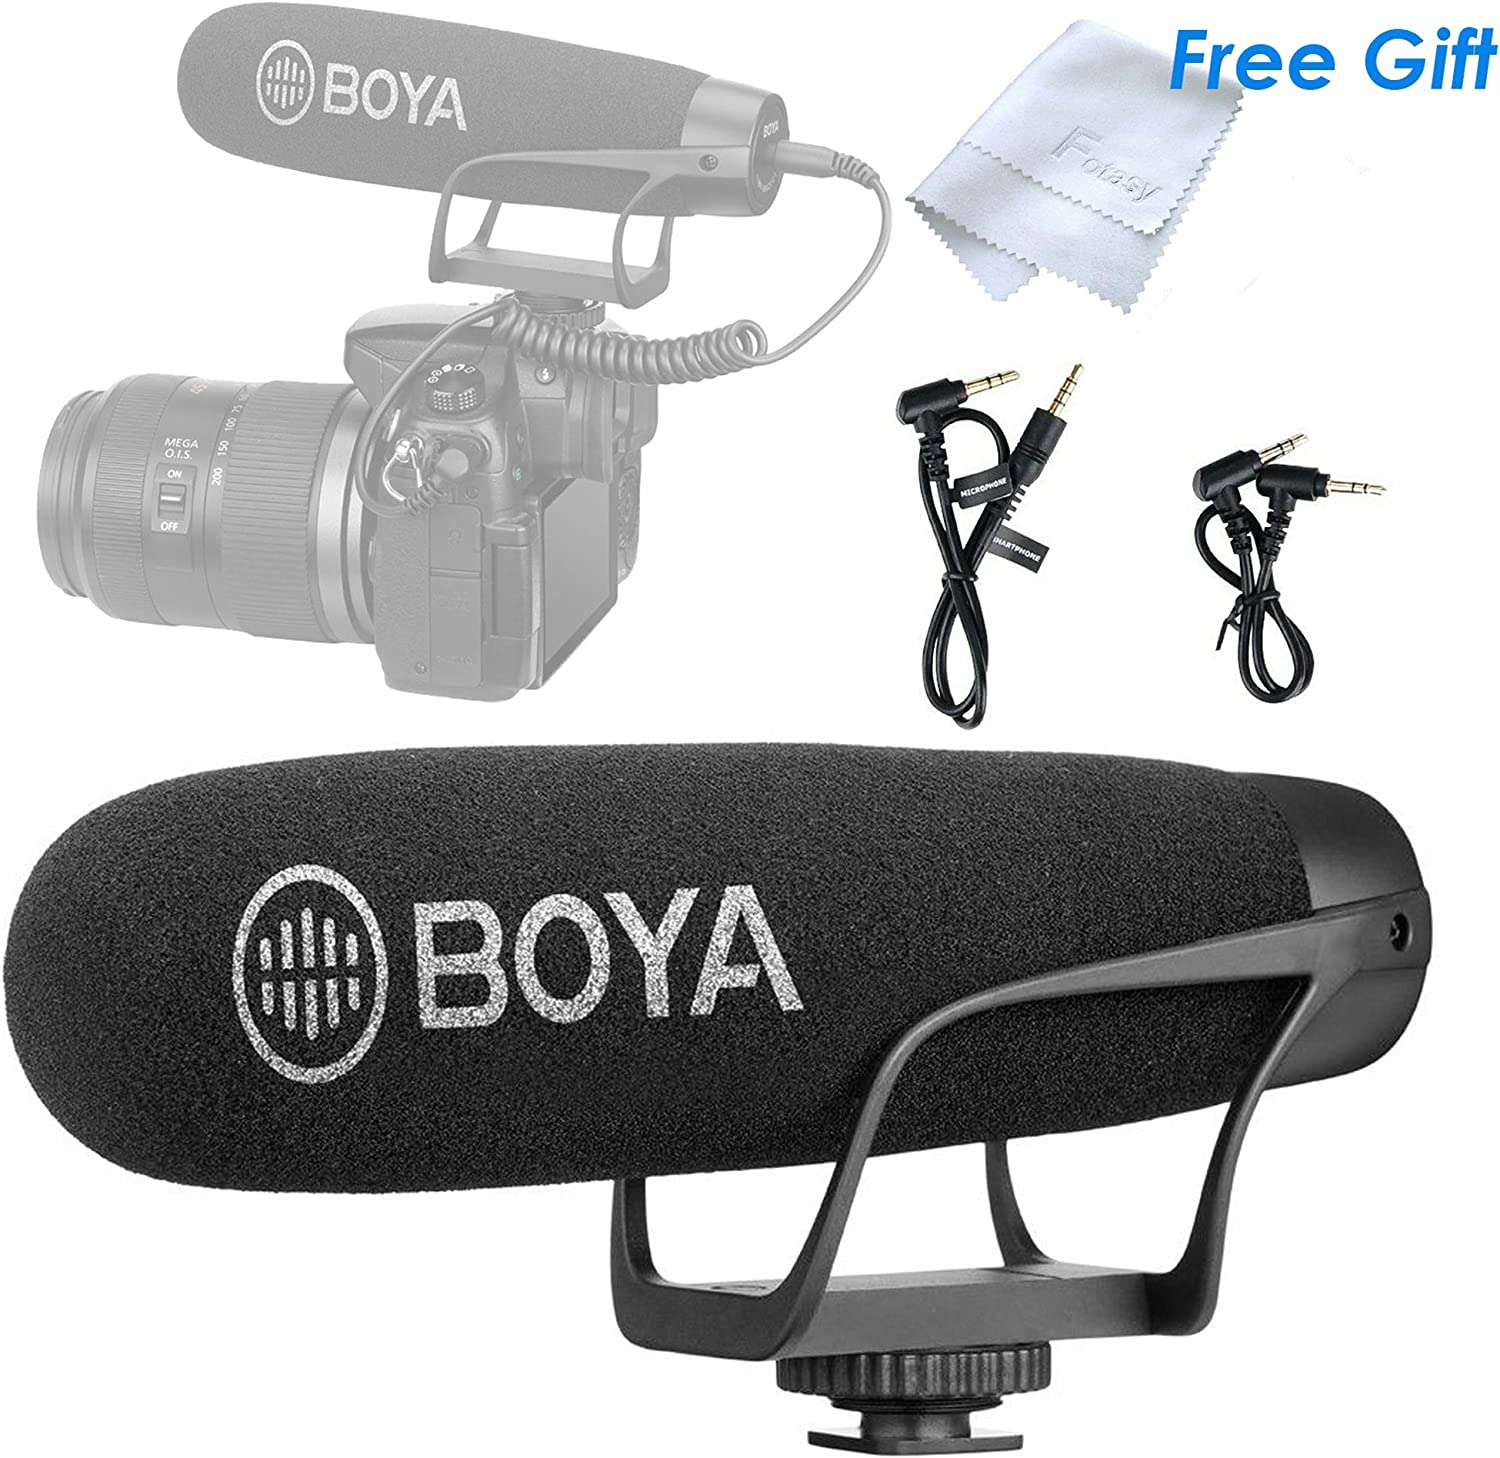 Boya BY-DM2 USB-C Omni directional Lavalier Microphone for Android Smartphones Clip-on Mic for Type-C Phone Tablet Samsung Galaxy Note 10 9 8 S10 S9 Huawei Mate 10 Plus Xiaomi LG Google Pixel 6M Cab